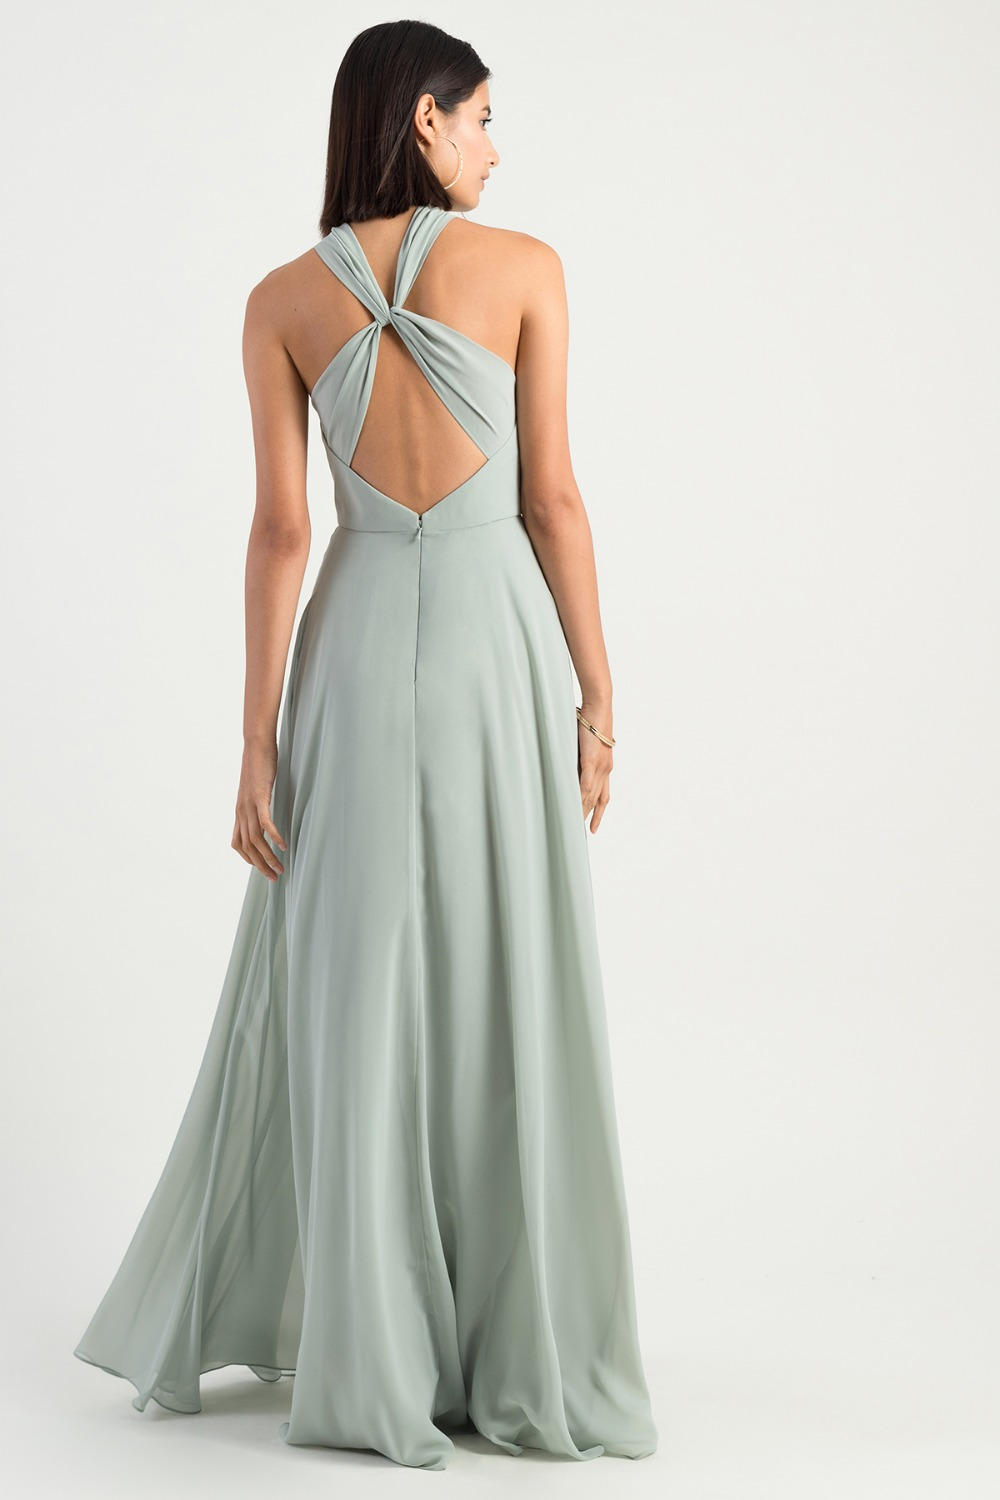 Halle Morning Mist bridesmaid dress by Jenny Yoo